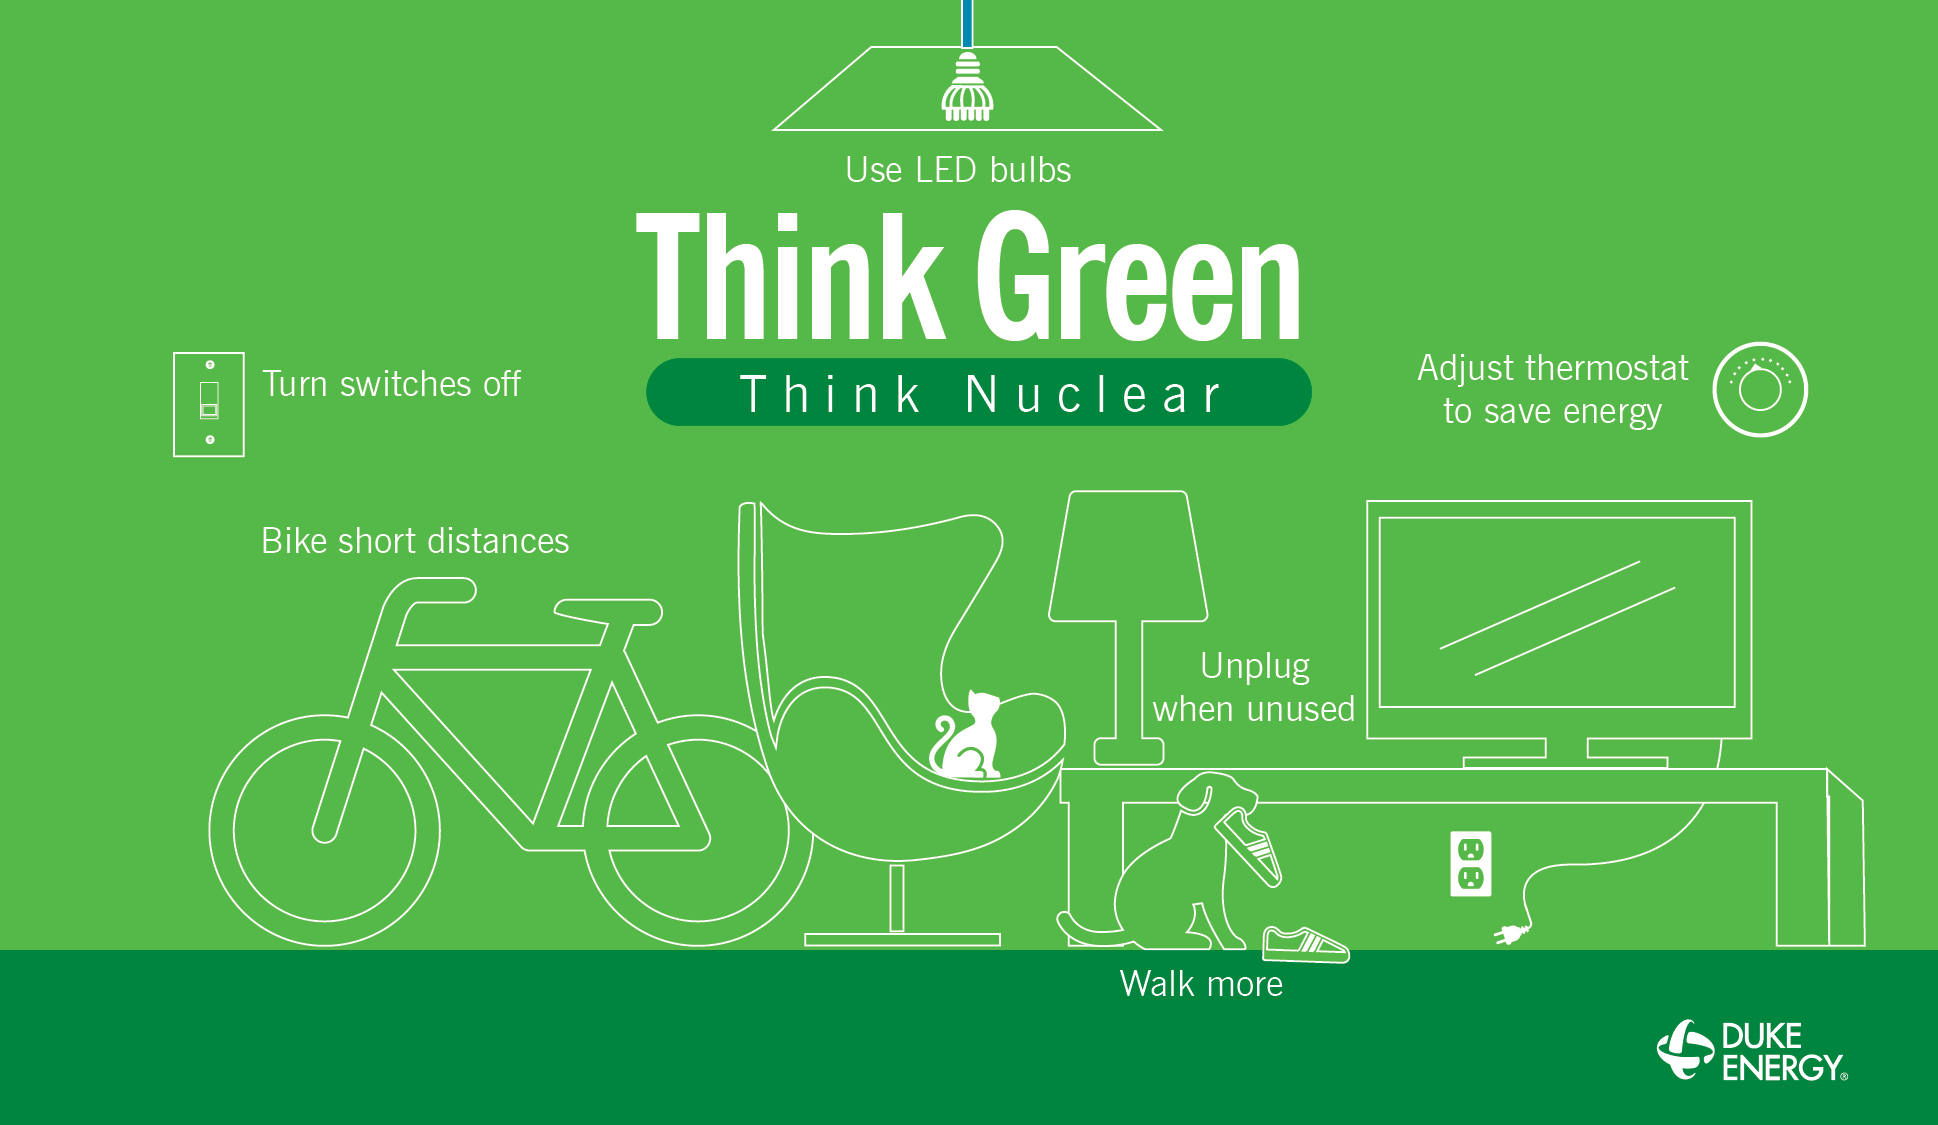 NuclearThinkGreen St. Patrick